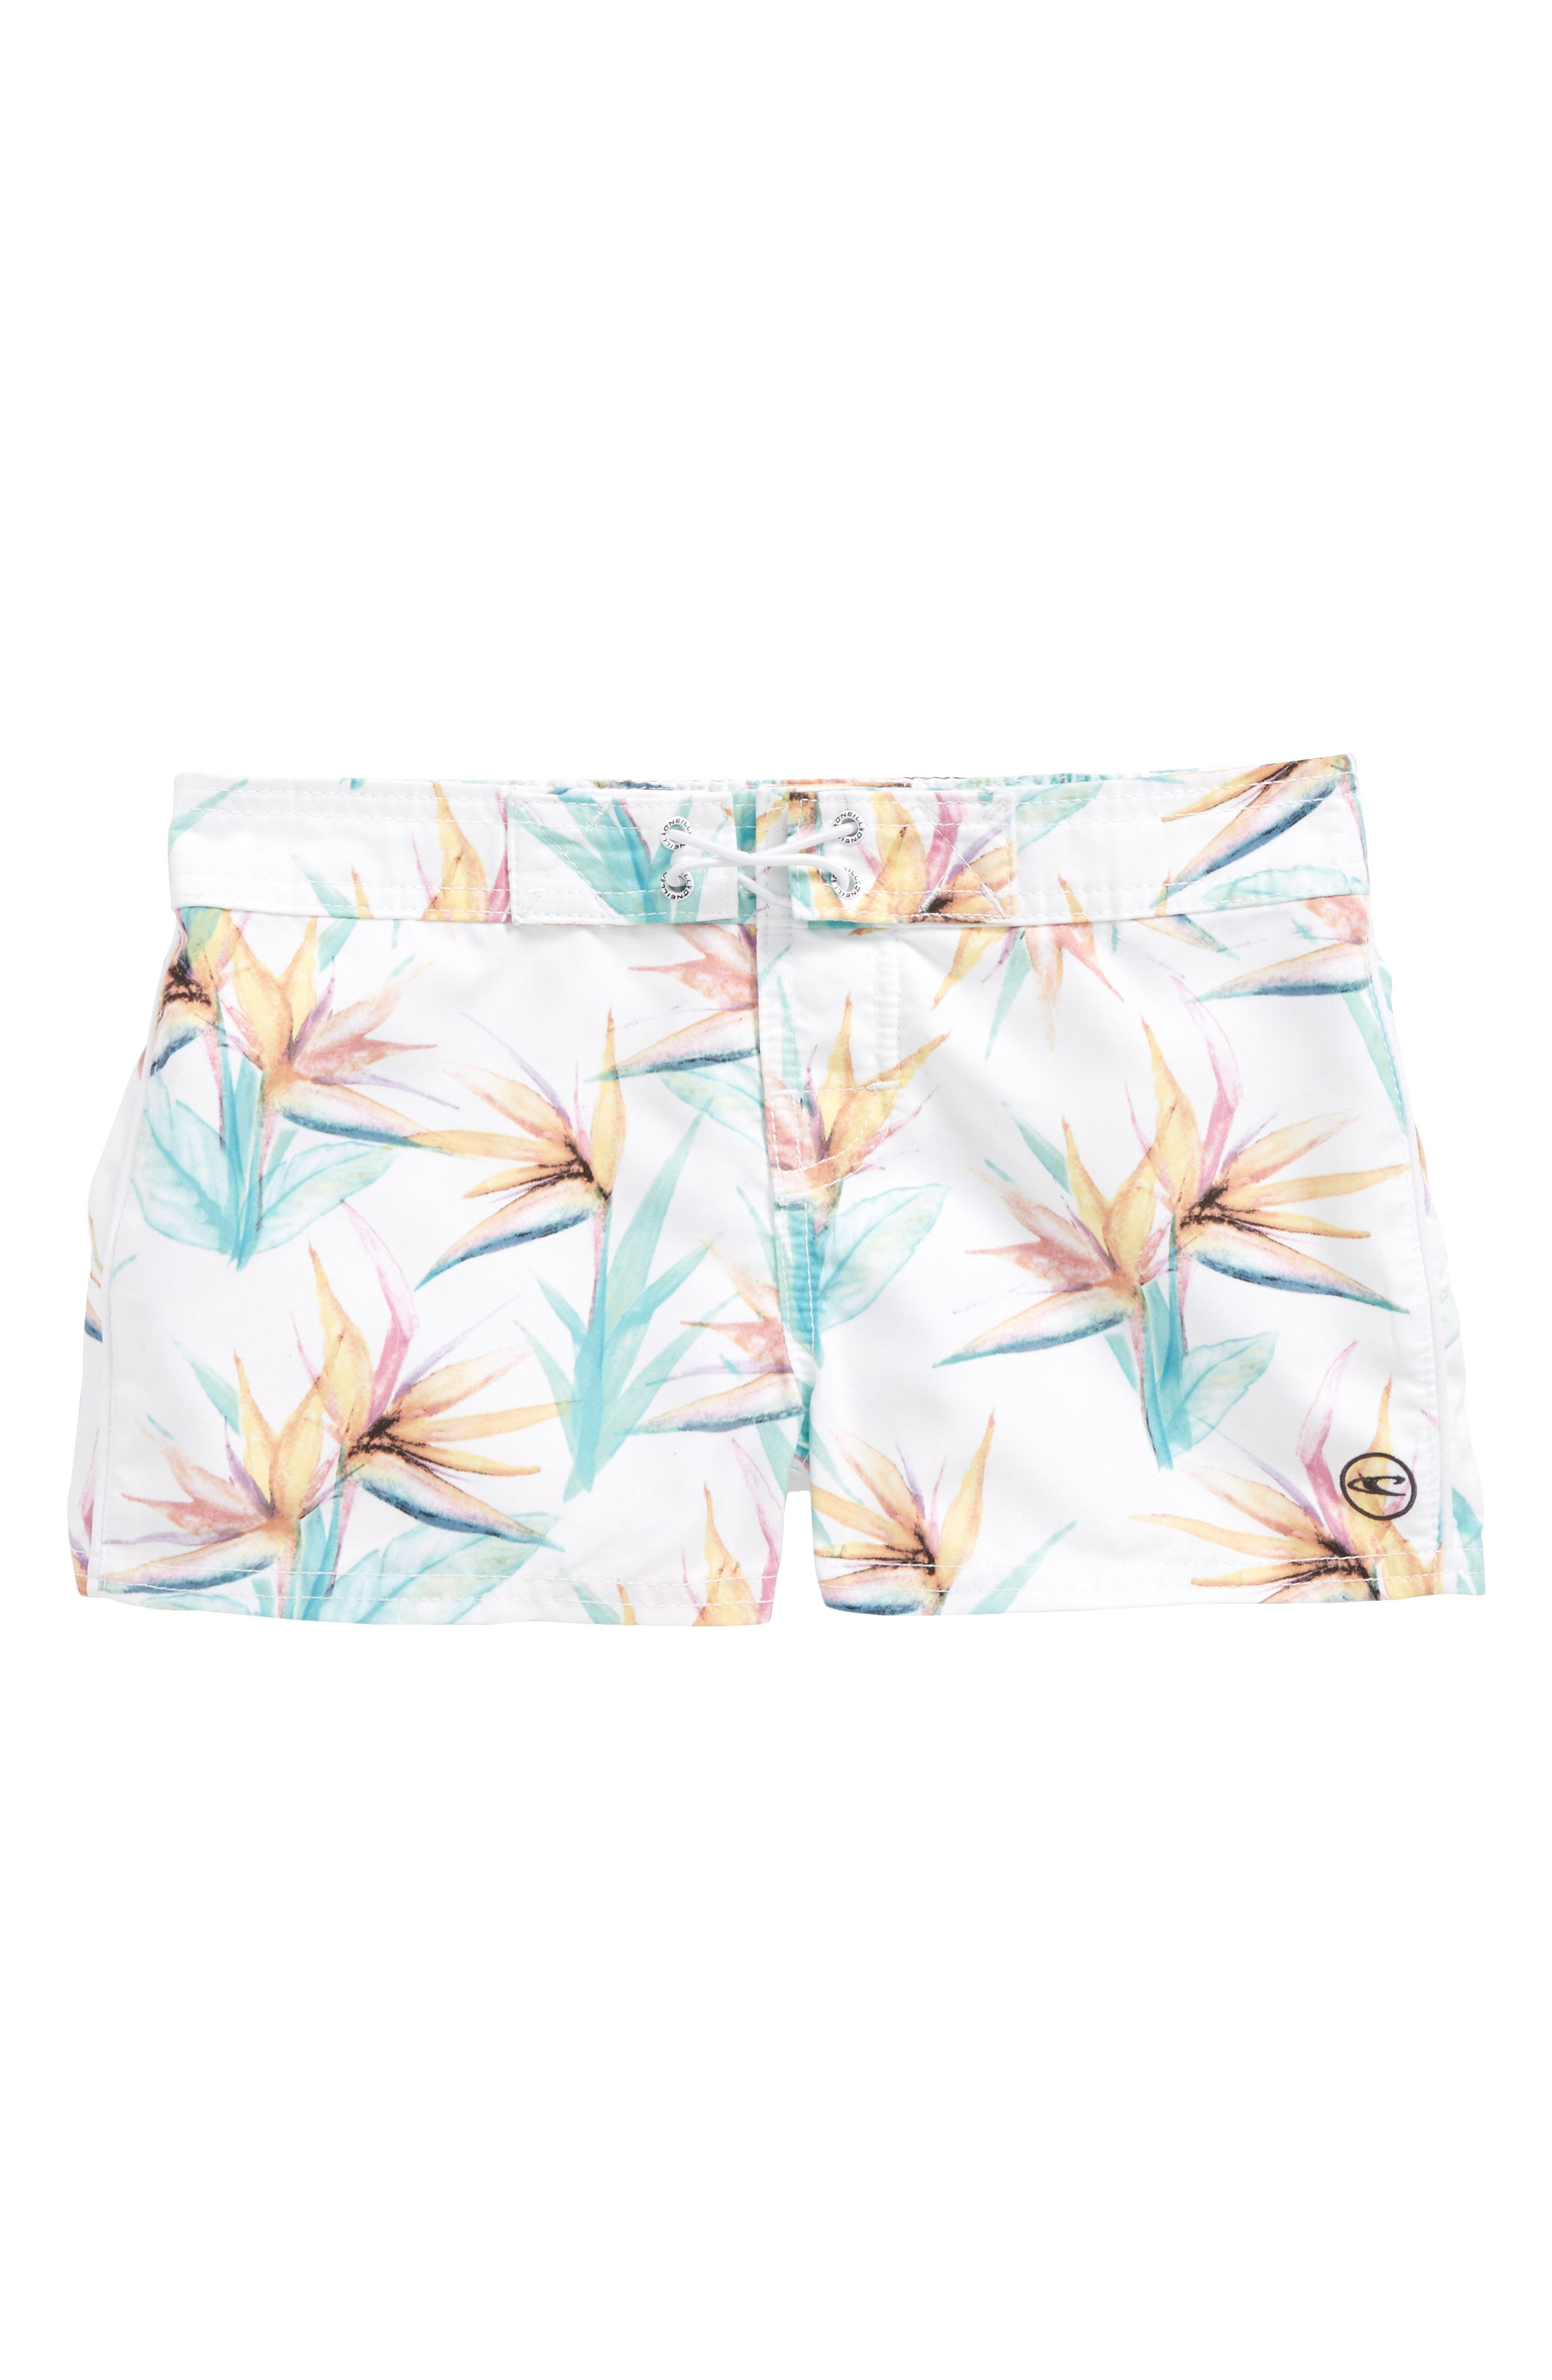 Breeze Board Shorts,                         Main,                         color, White - Wht